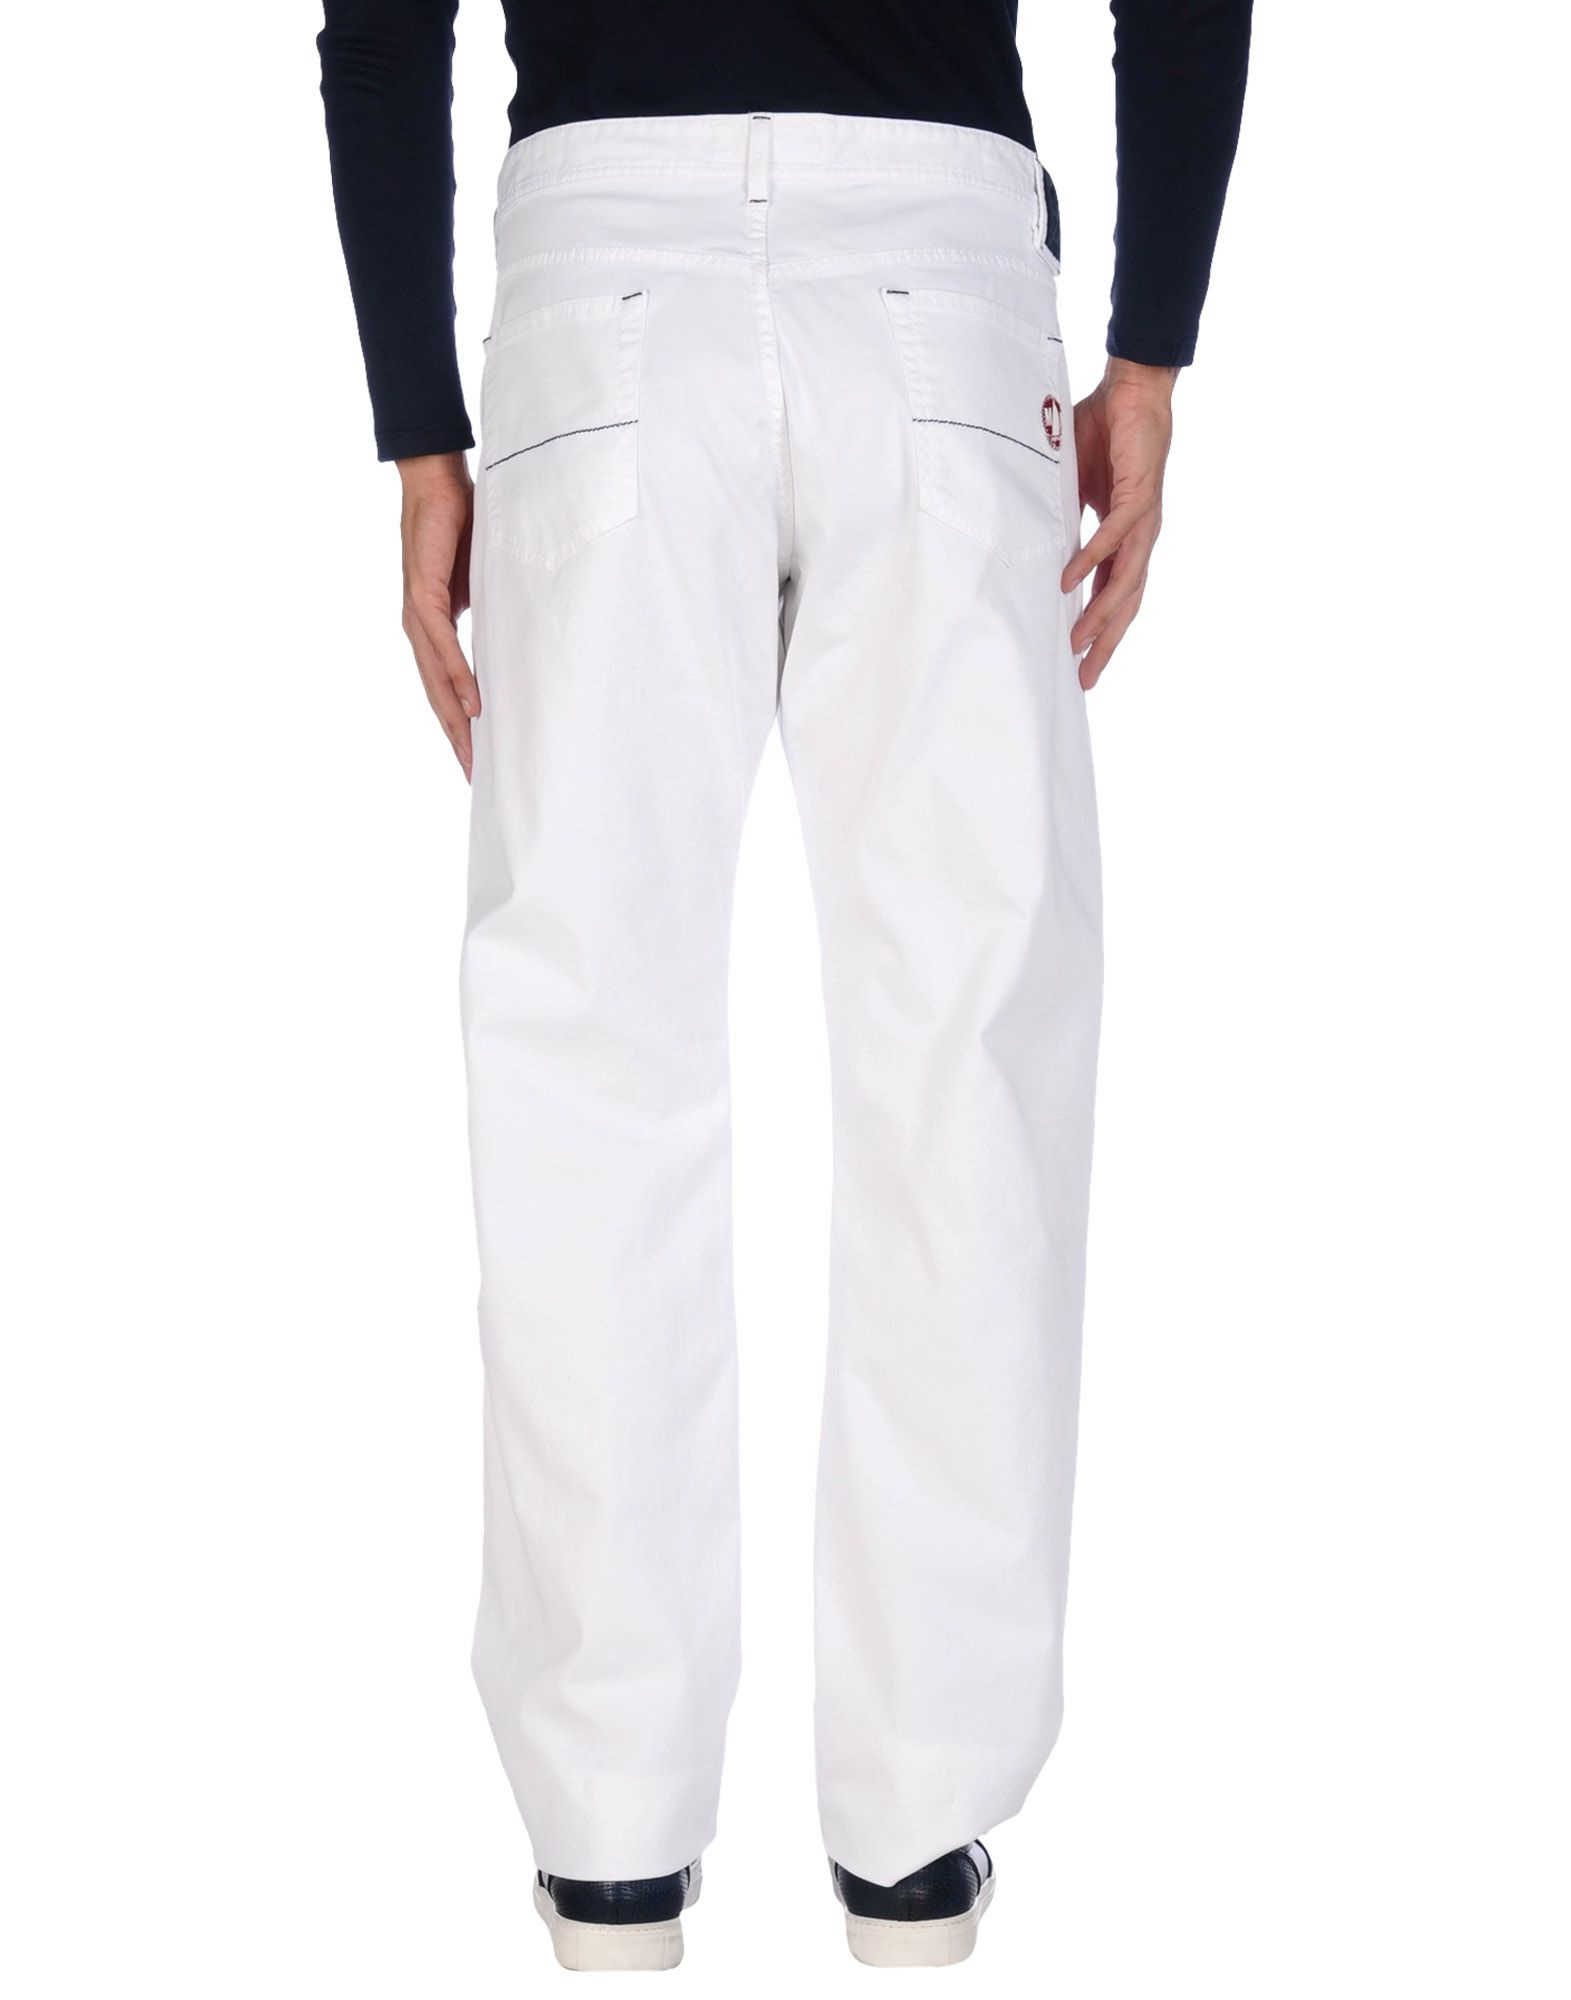 murphy nye casual pants in white for men lyst. Black Bedroom Furniture Sets. Home Design Ideas